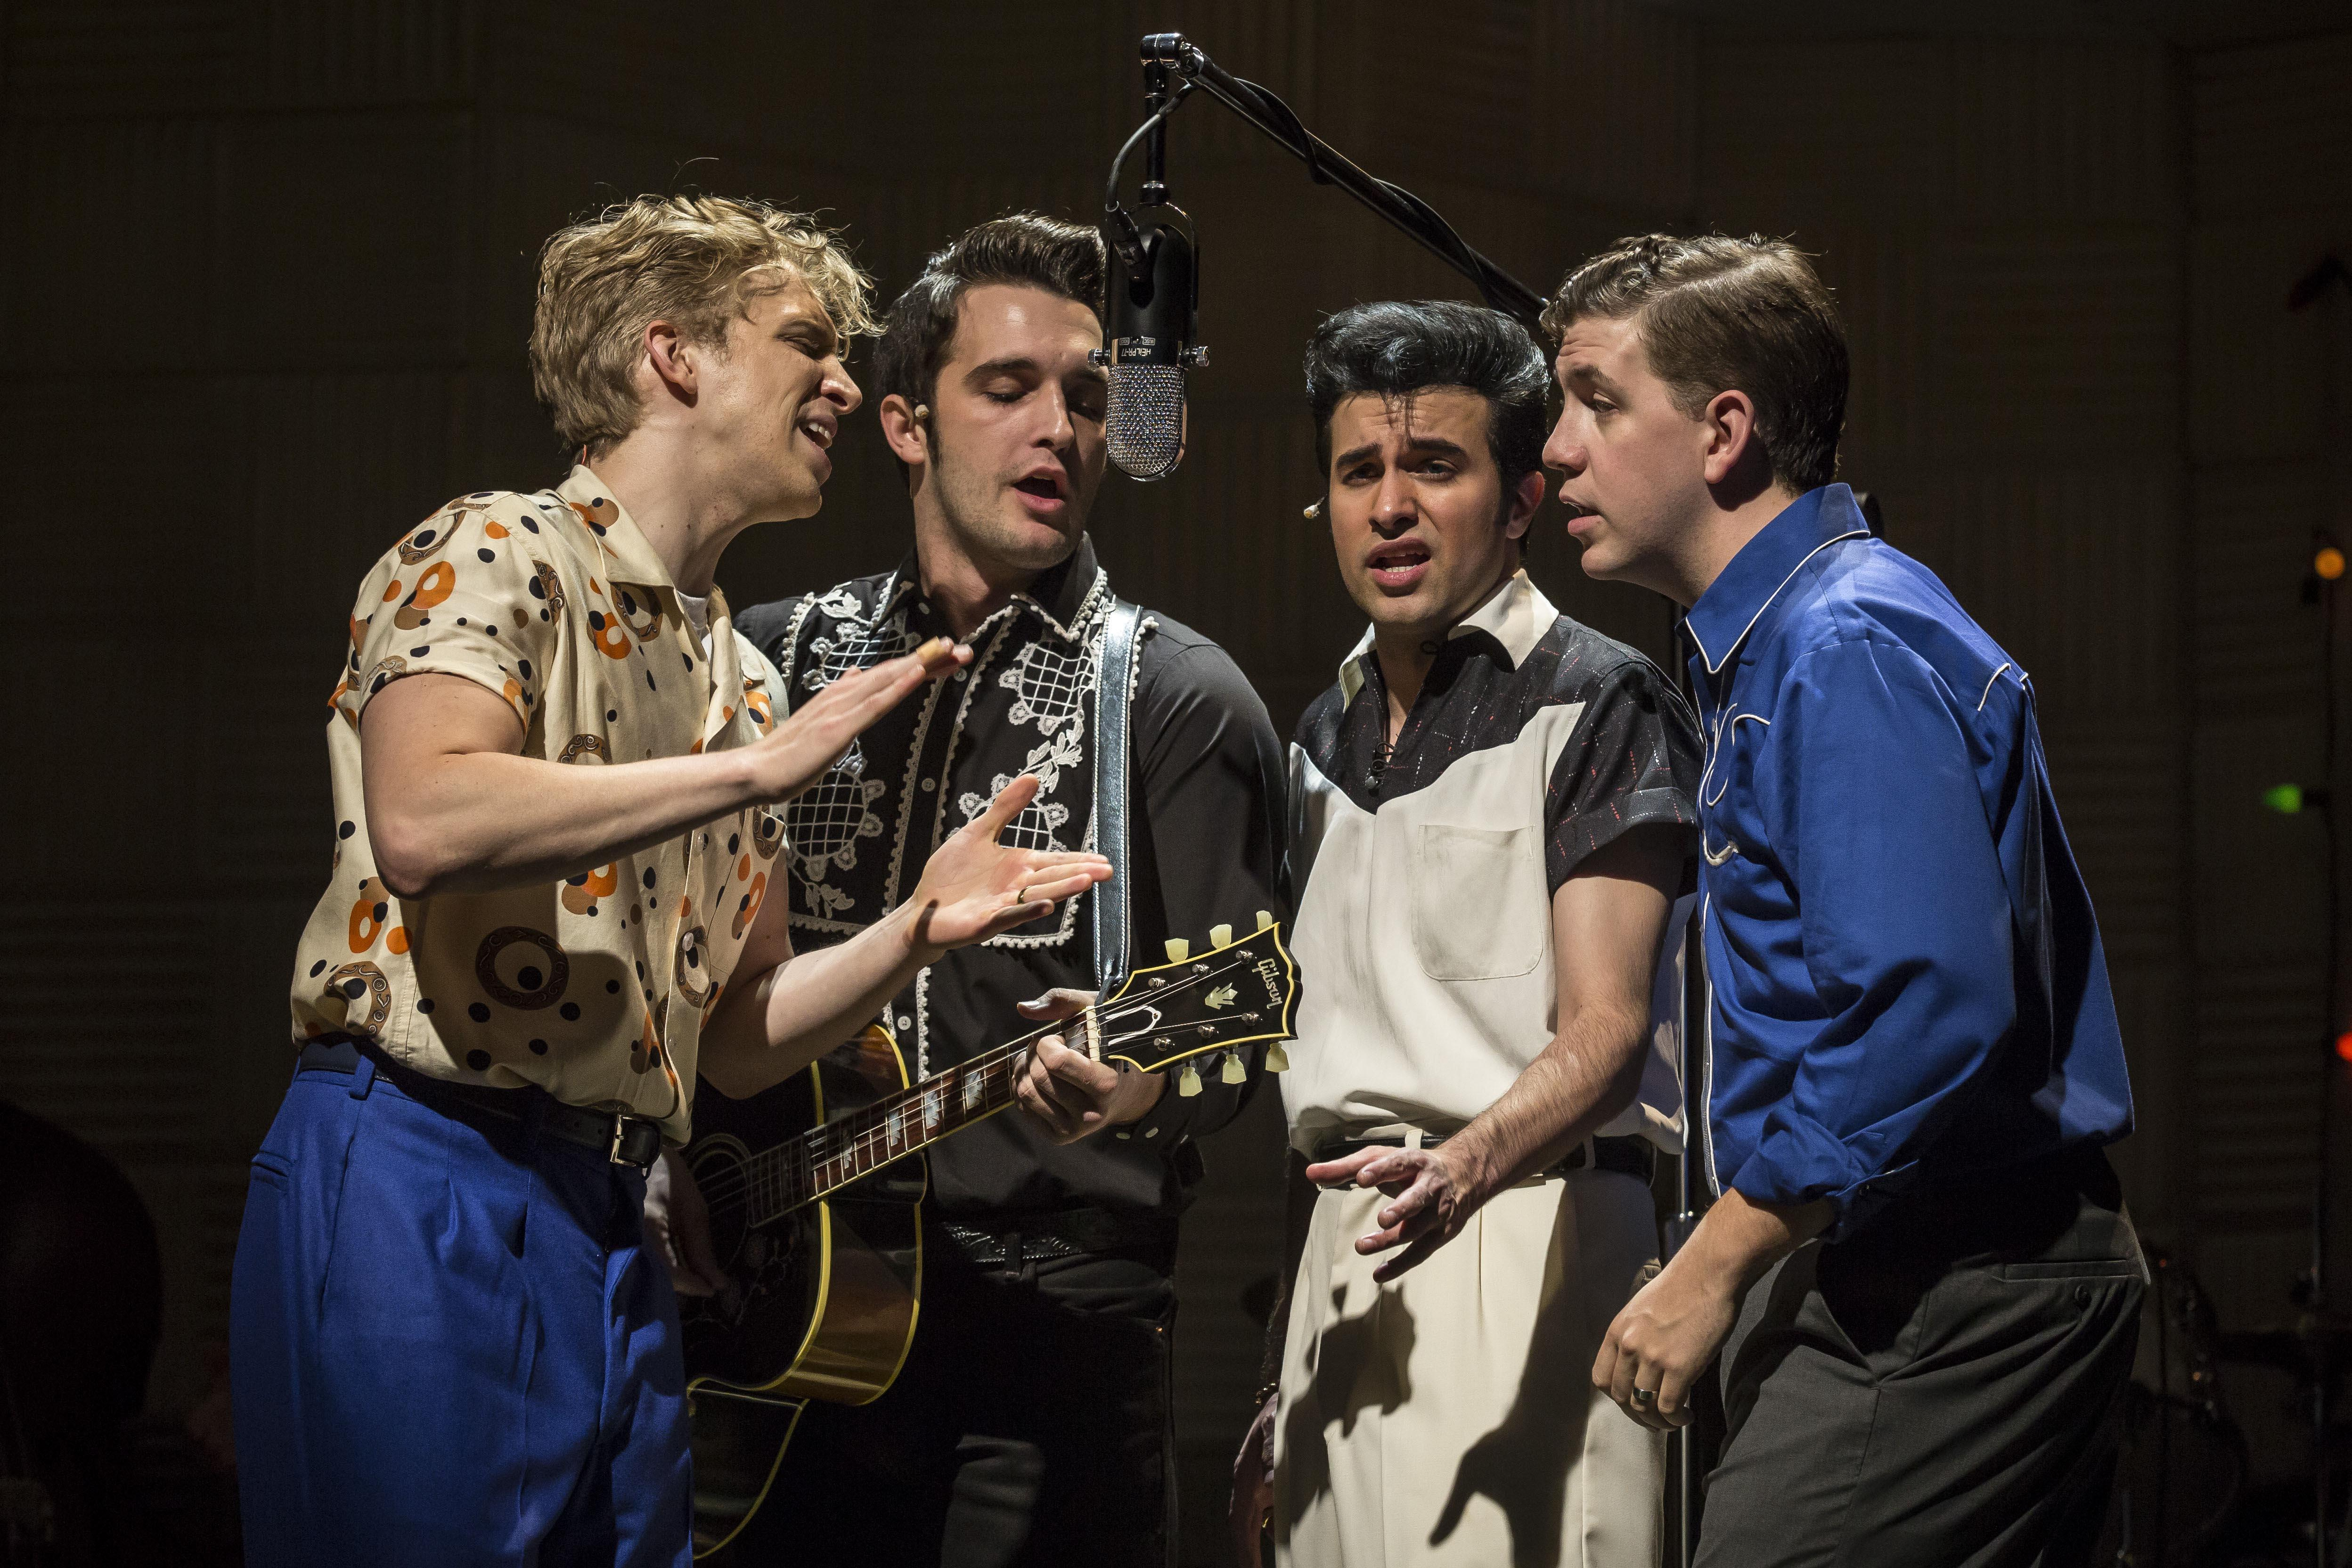 """Million Dollar Quartet"" stars, from left: Gavin Rohrer as Jerry Lee Lewis, Bill Scott Sheets as Johnny Cash, Kavan Hashemian as Elvis Presley and Adam Wesley Brown as Carl Perkins. (Credit: Liz Lauren)"